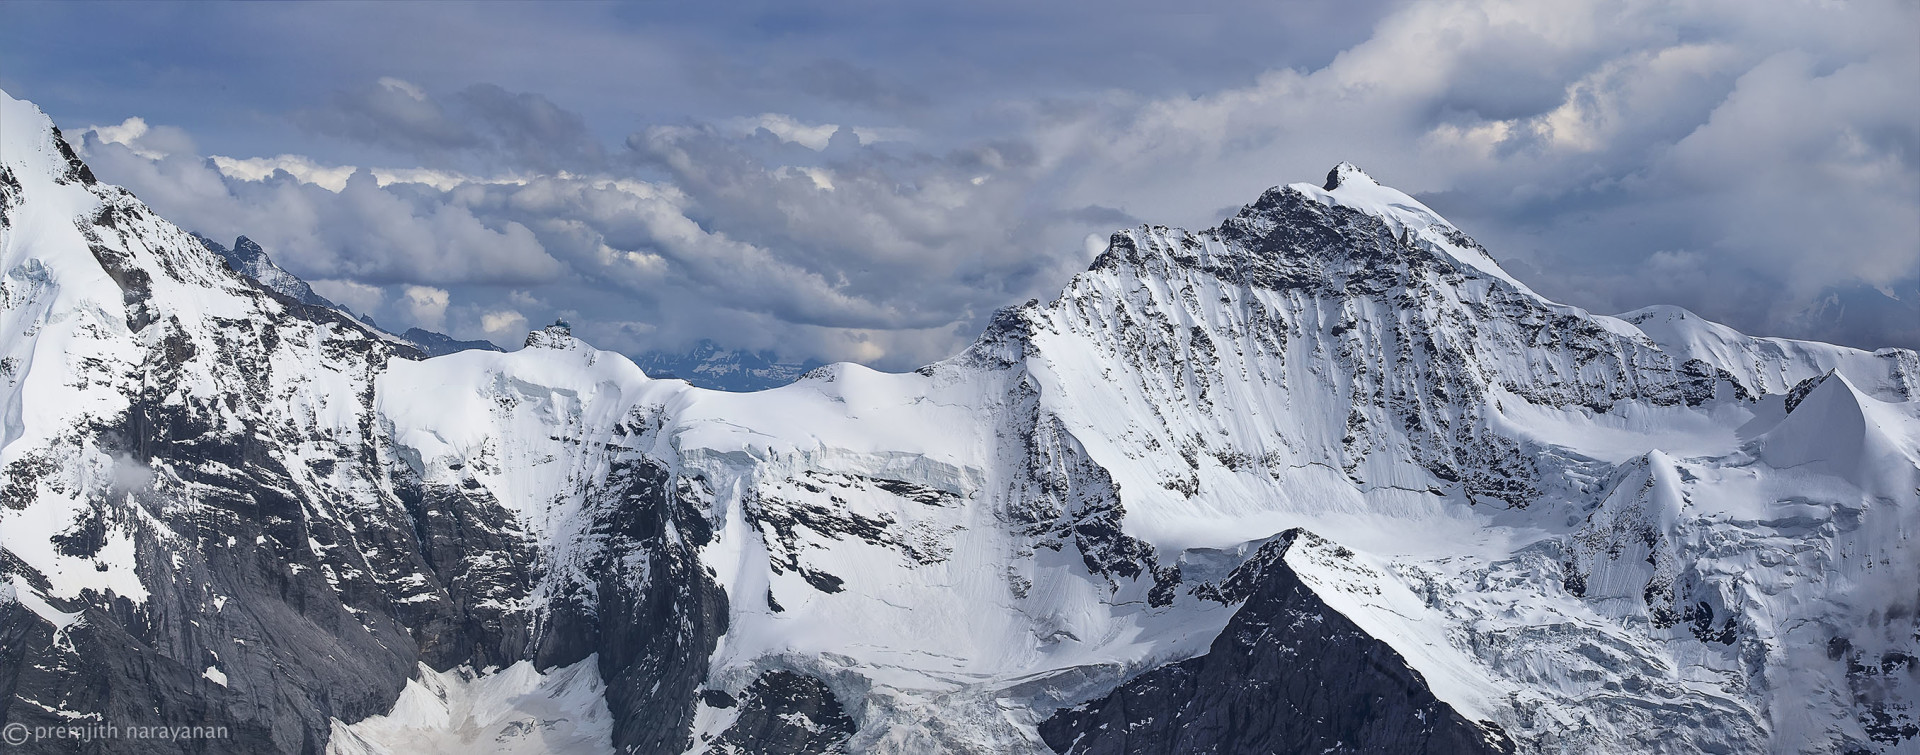 """JUNGFRAUJOCH""  LOCATED  BETWEEN  ""MONCH""  ON  THE  LEFT  AND  ""JUNGFRAU""  ON  THE  RIGHT."